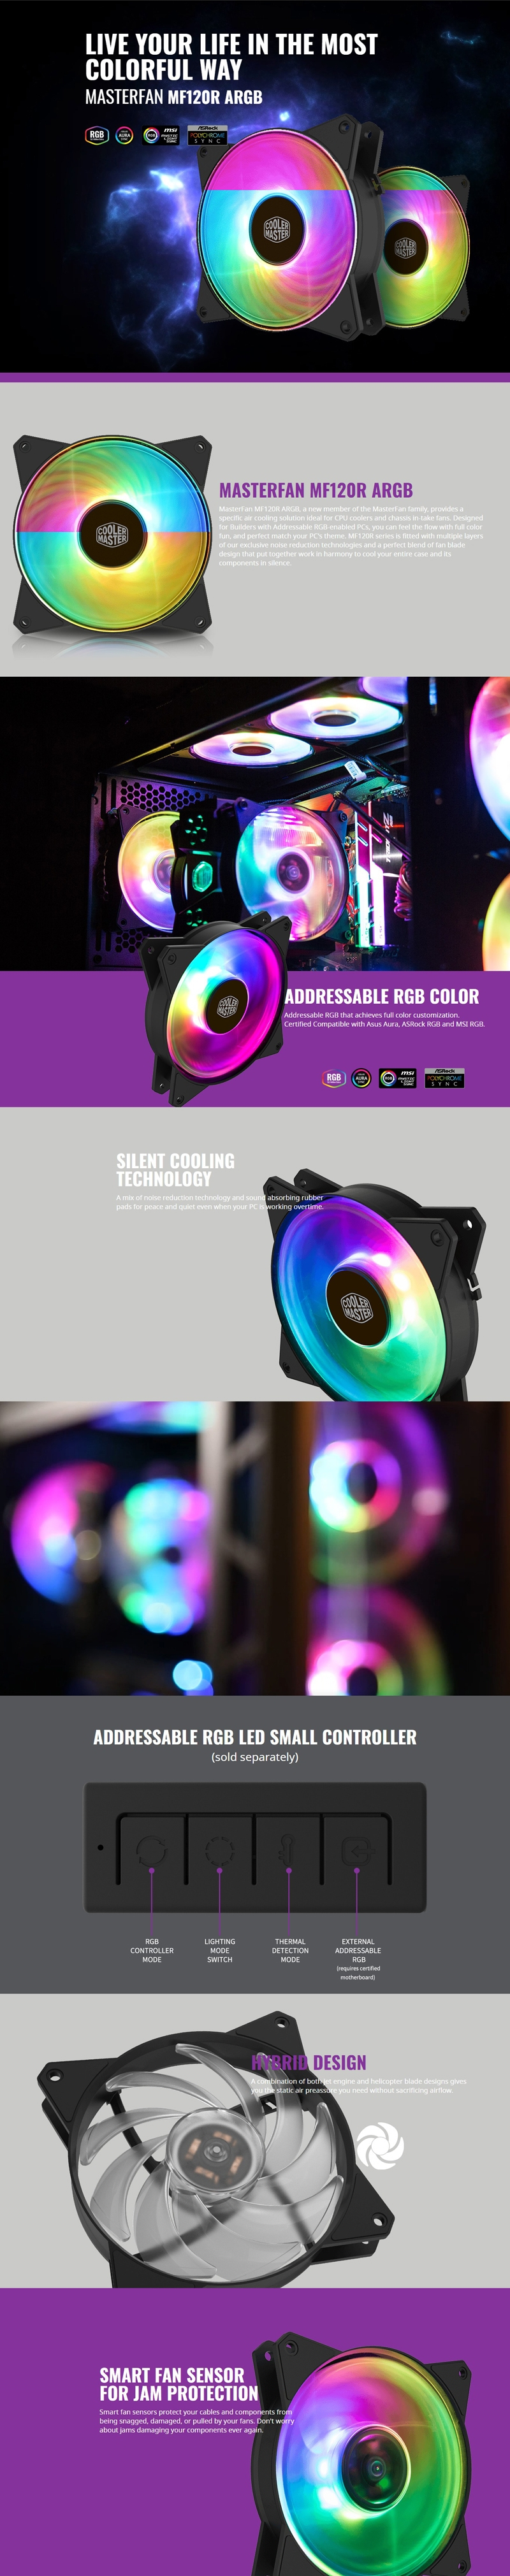 Coolermaster Masterfan 120mm Addressable Rgb Fan Support Cm Plus Software  Control R4-120r-20pc-r1